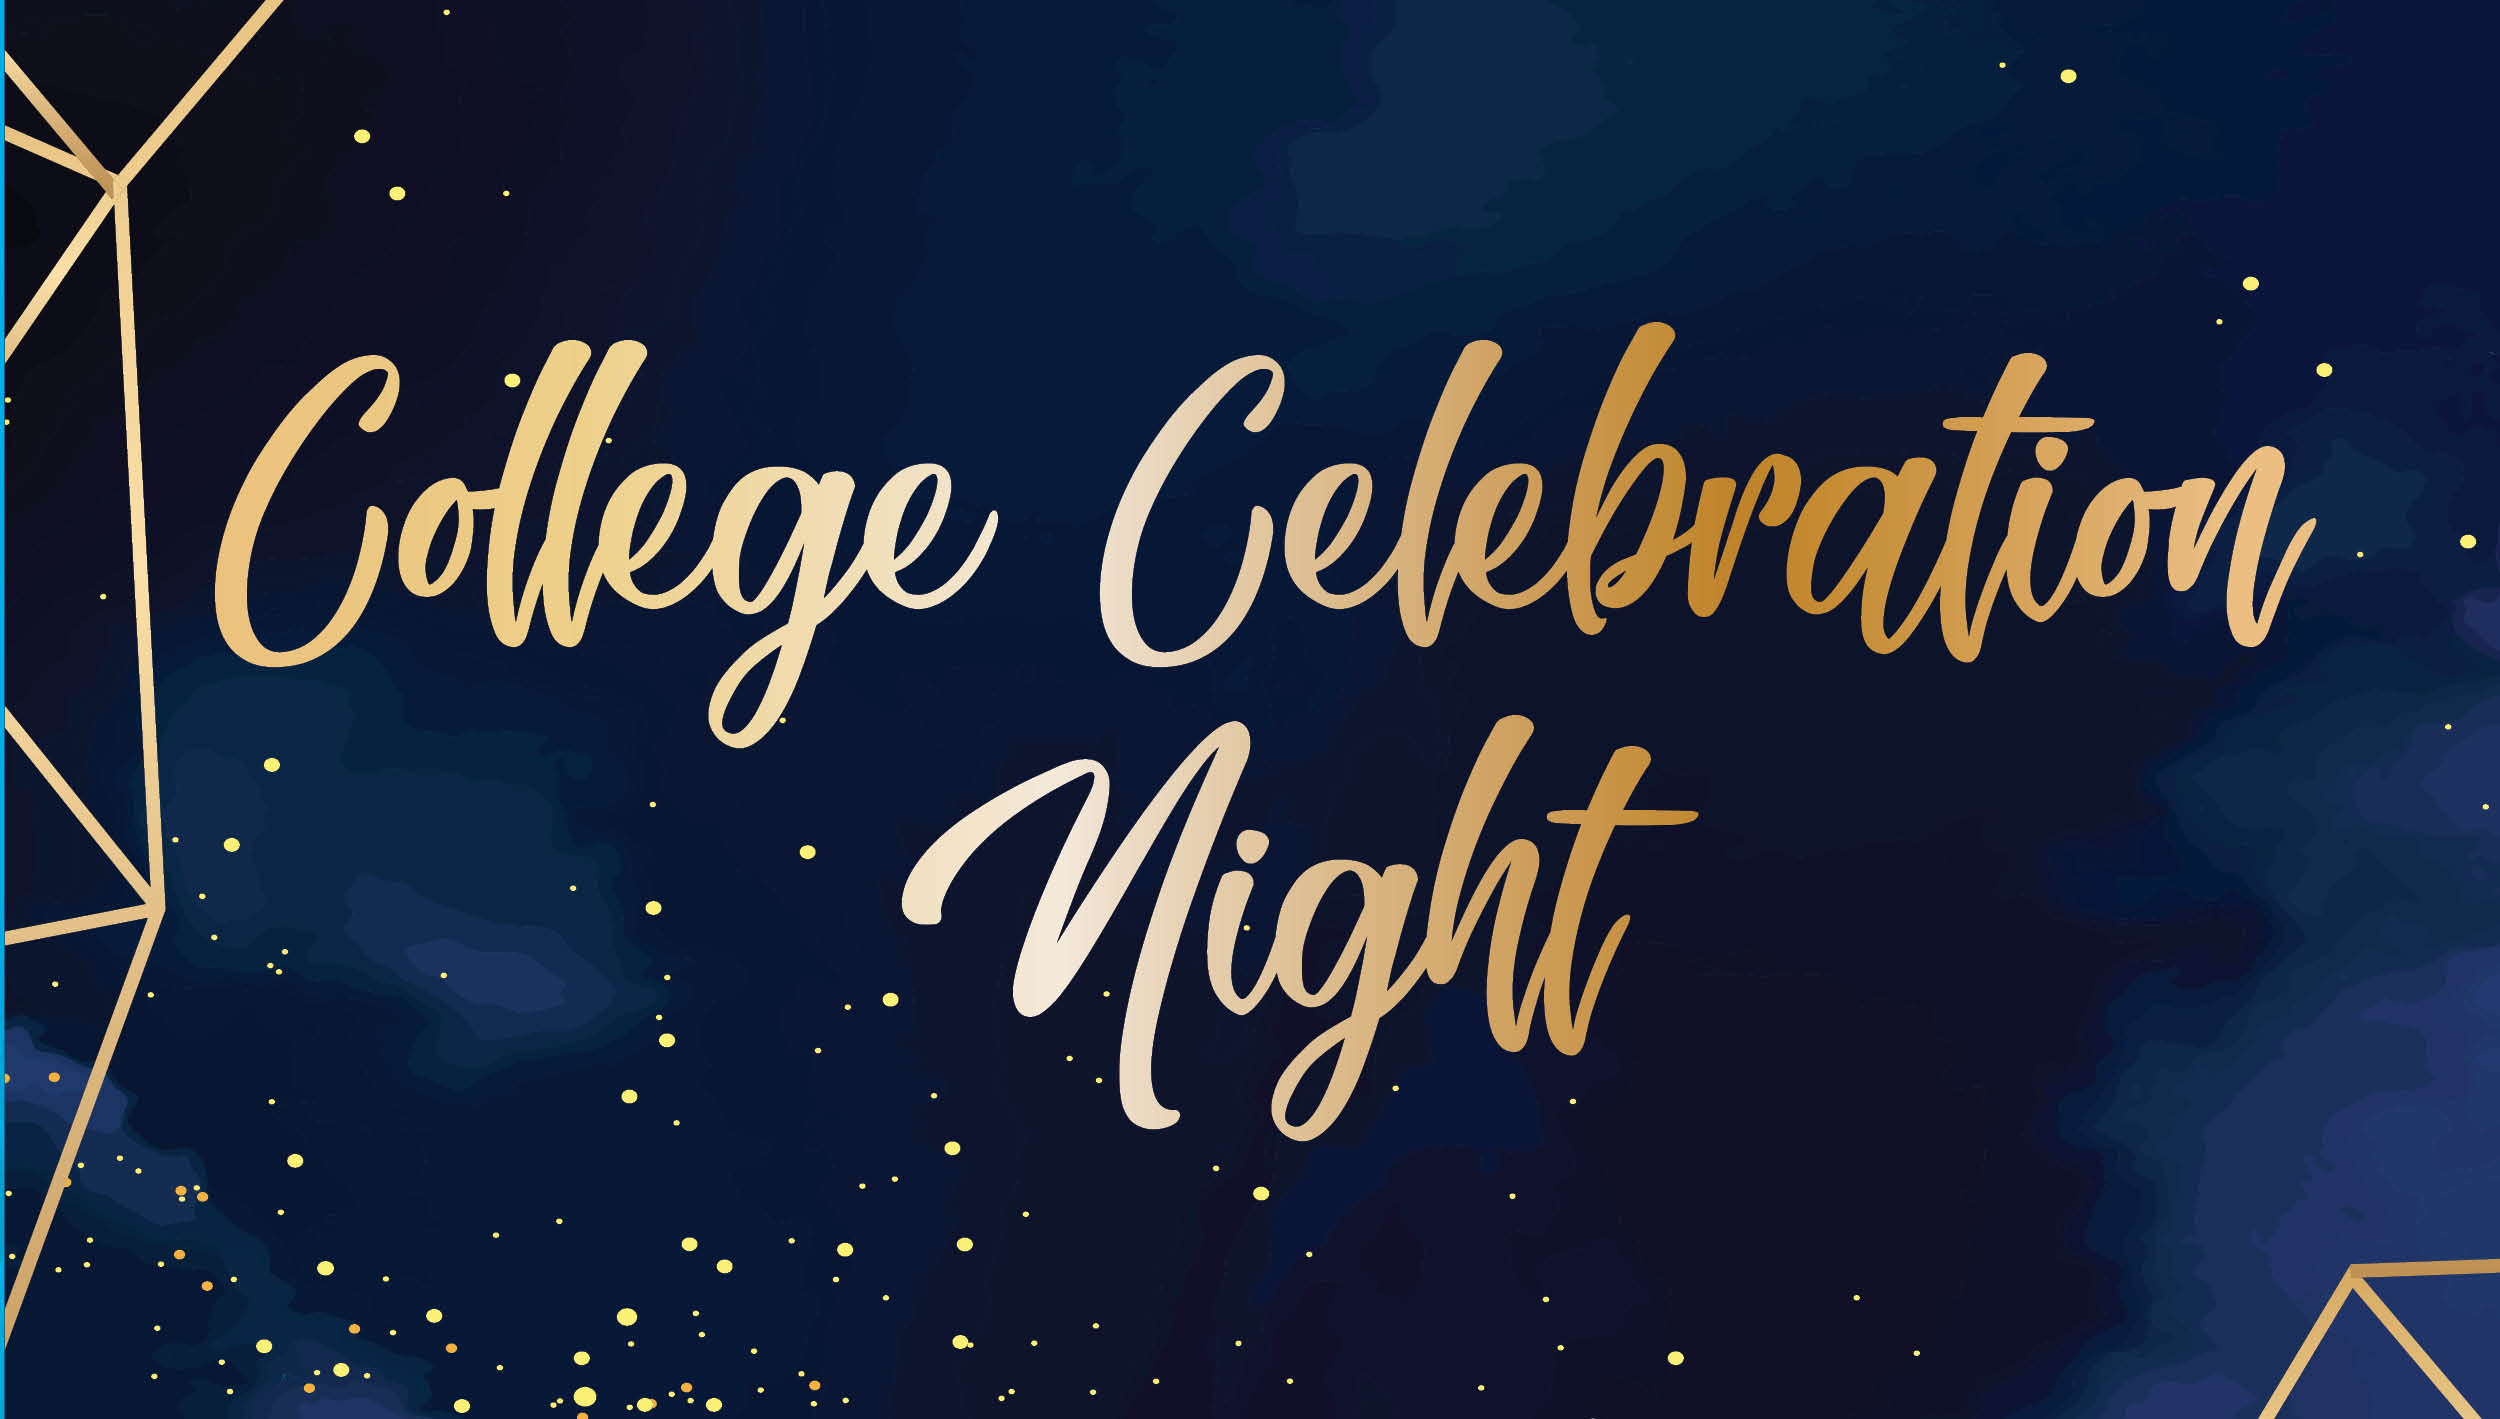 Image for College Celebration Night